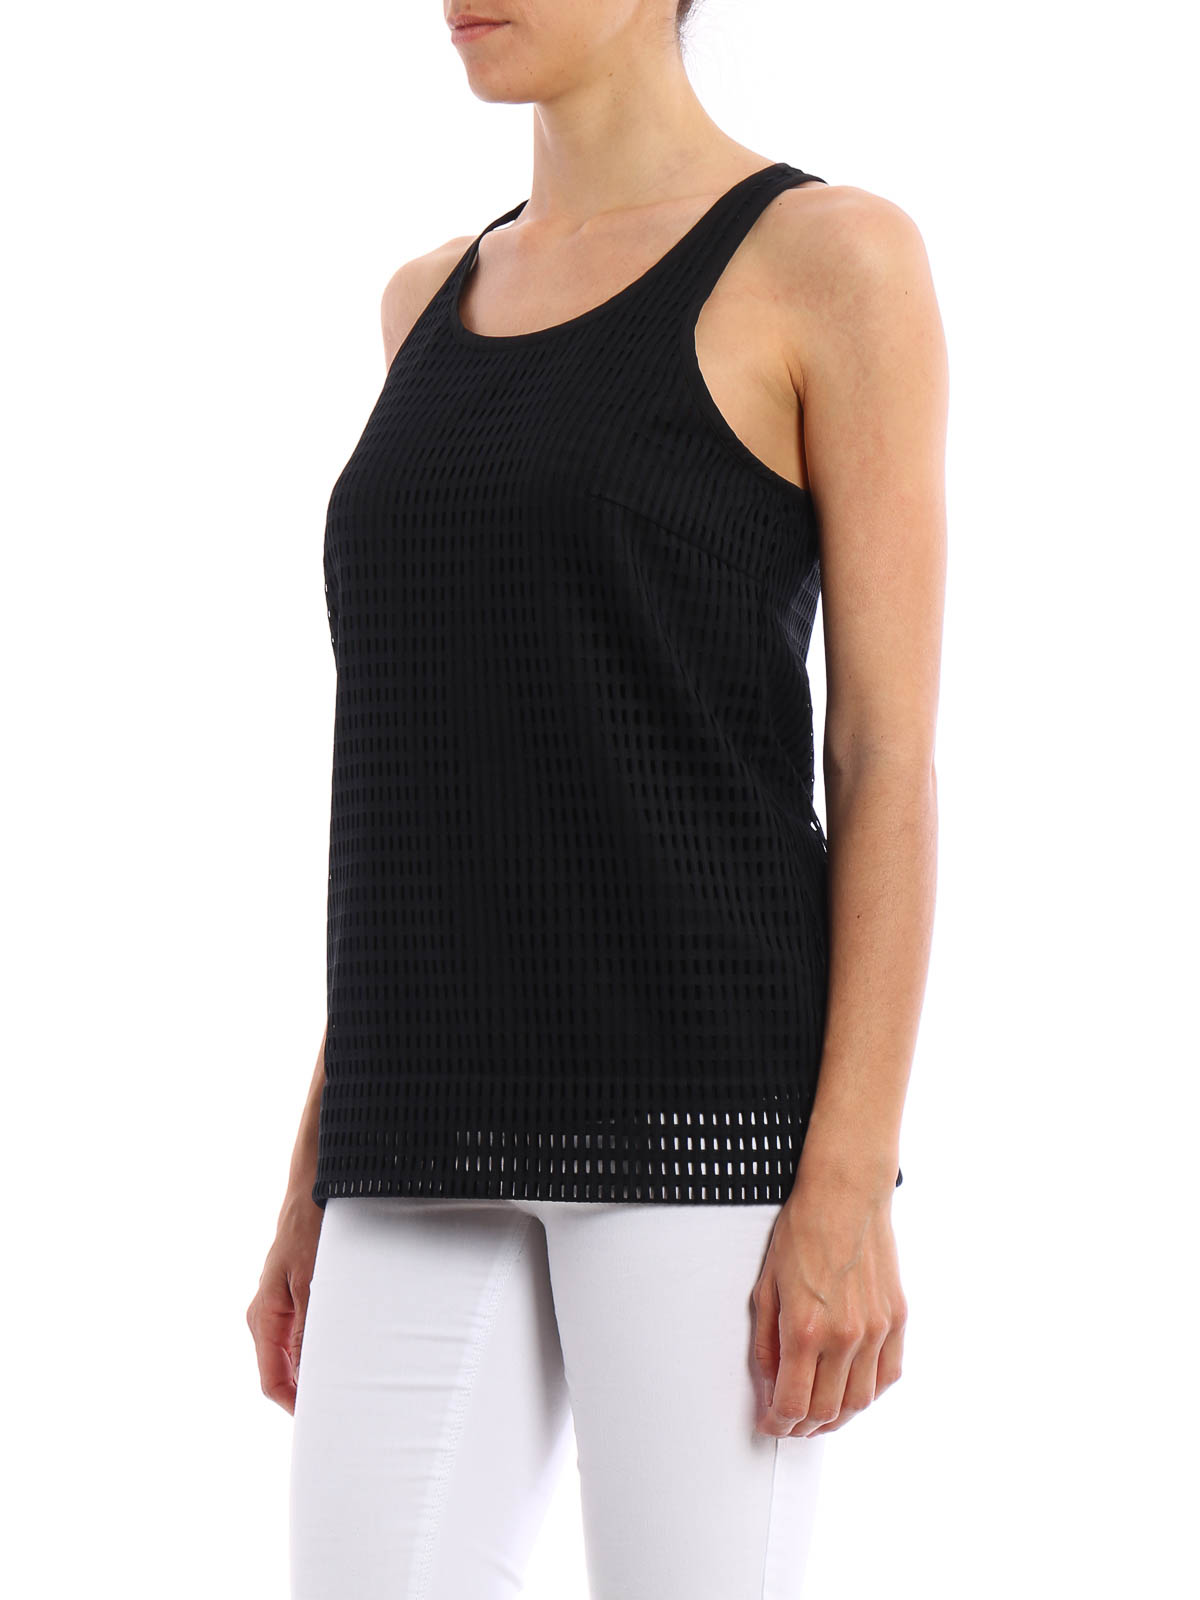 Today's custom ladies tanks offer great styling, new colors and fashion fits. For many years, ladies were relegated to tank tops designed for men that had a boxy square cut that makes you look thicker and broader shouldered.